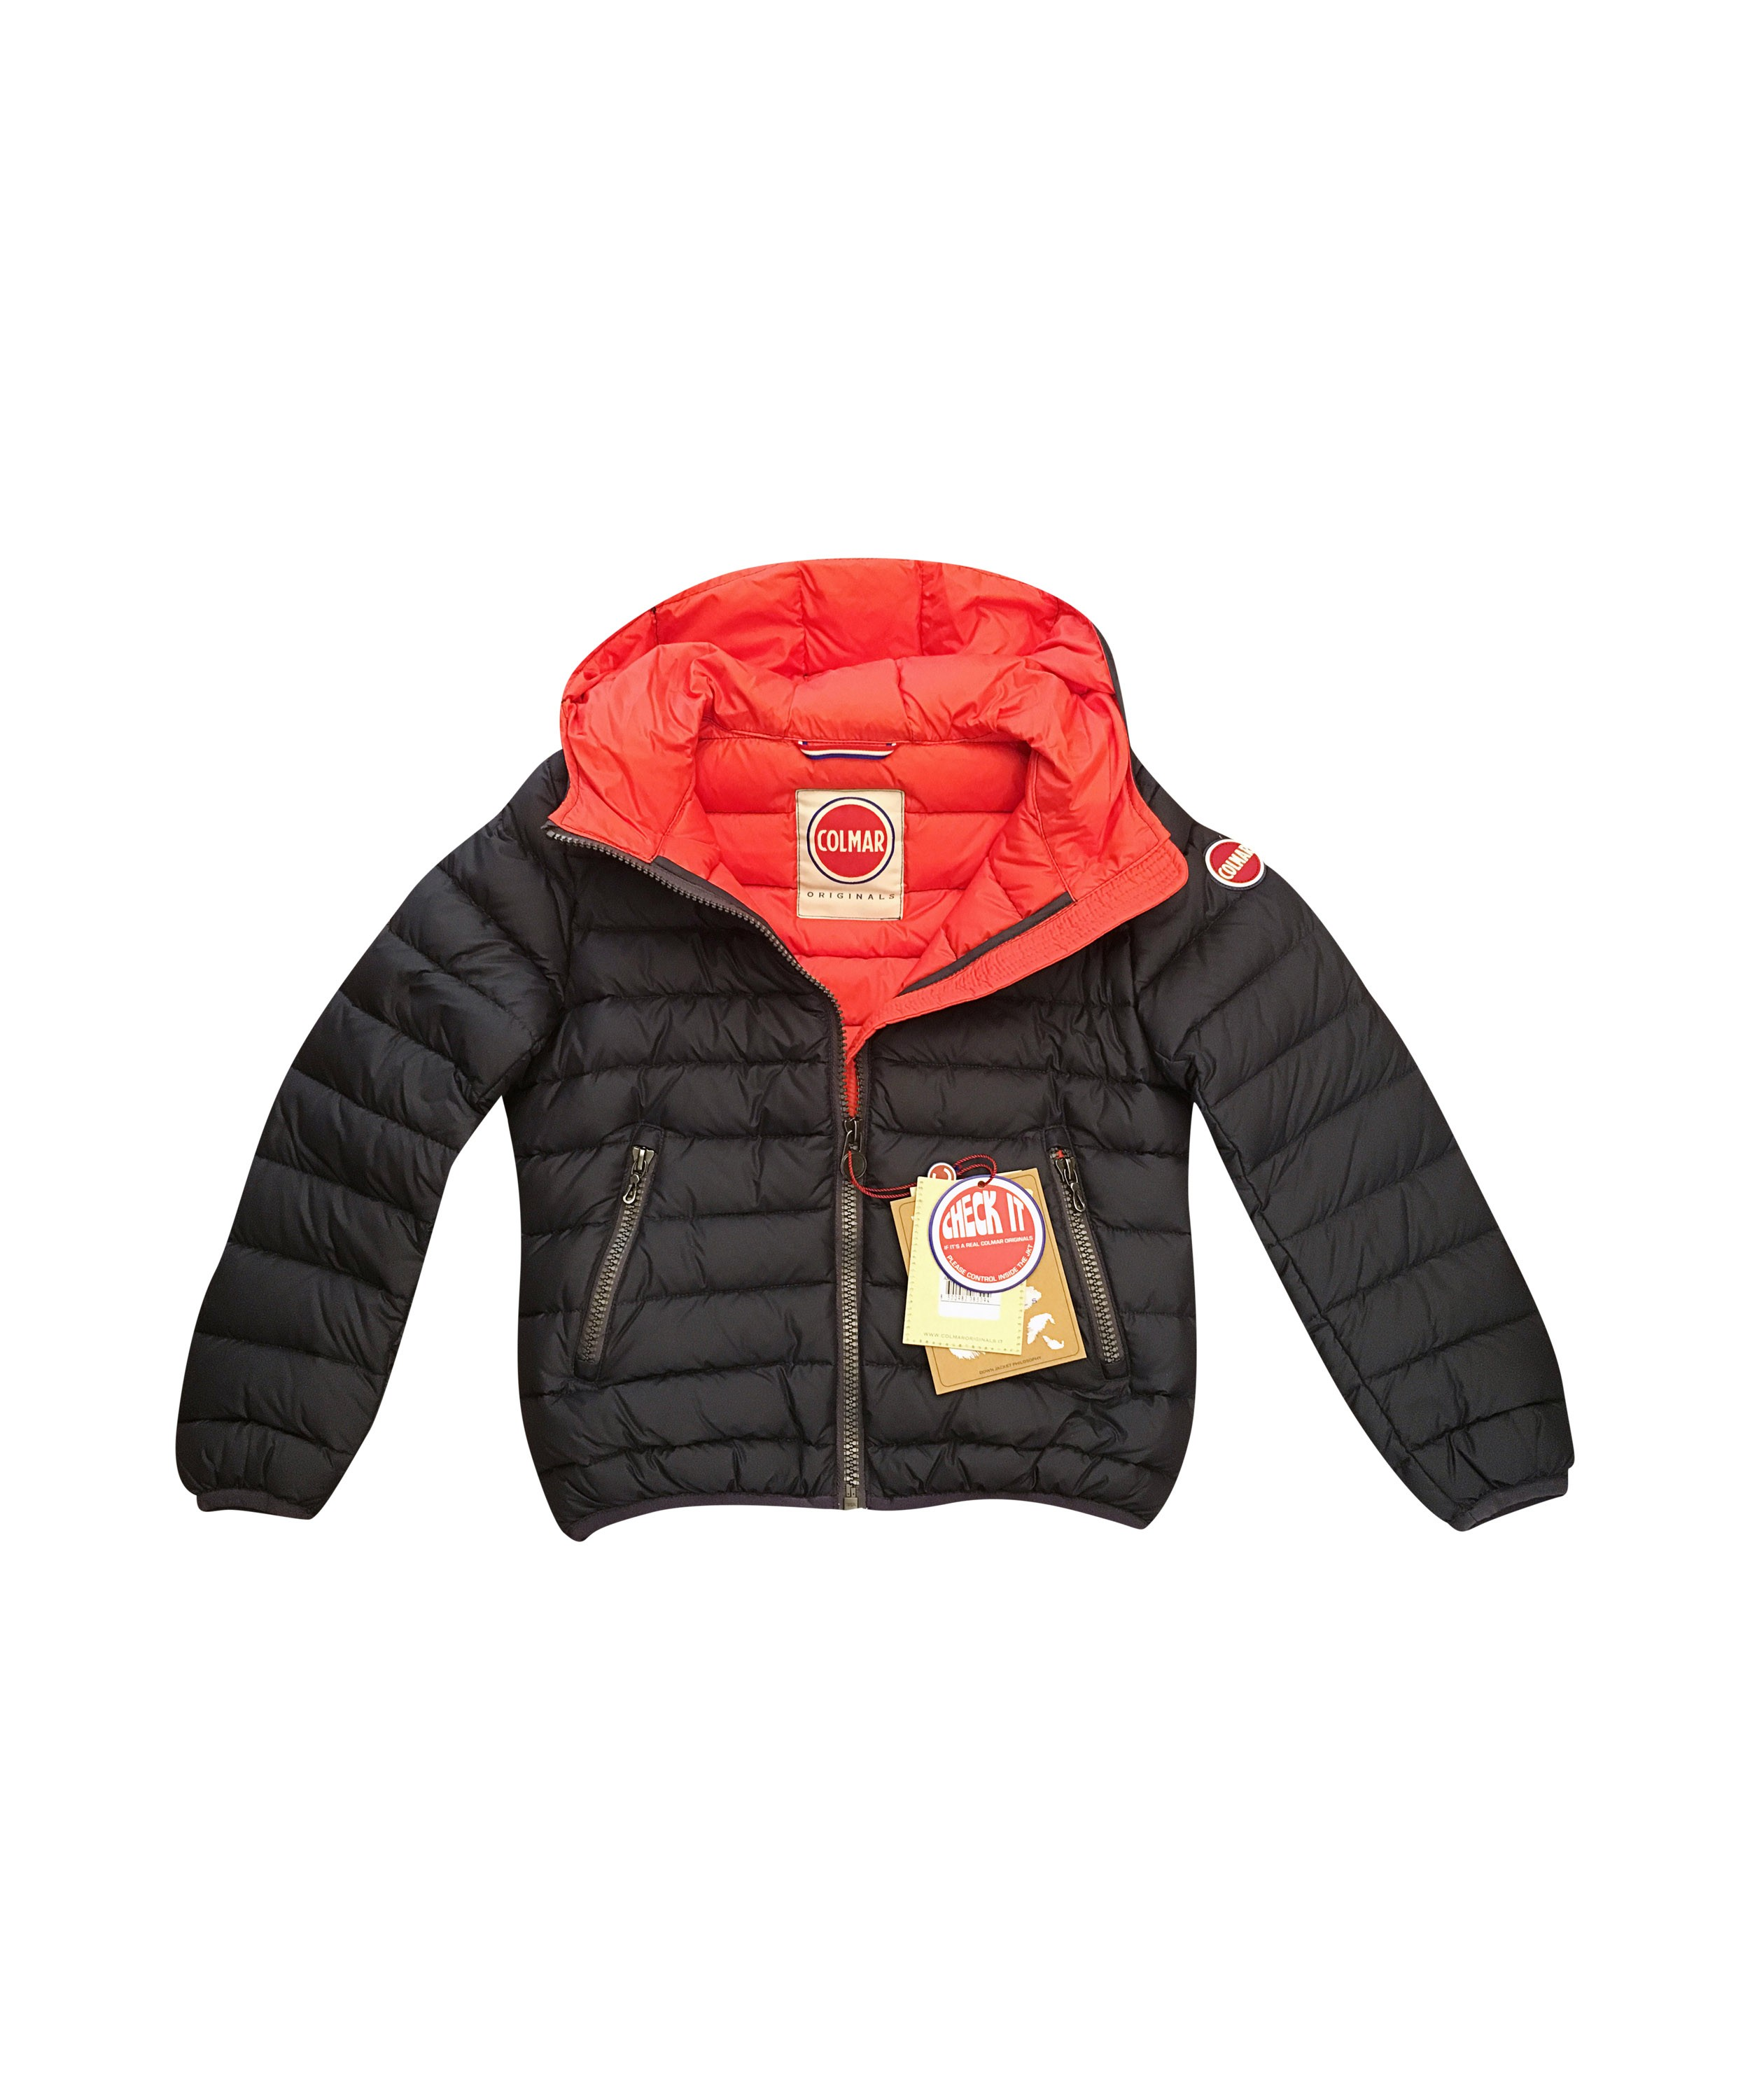 Boy navy blue/red lined Colmar down jacket